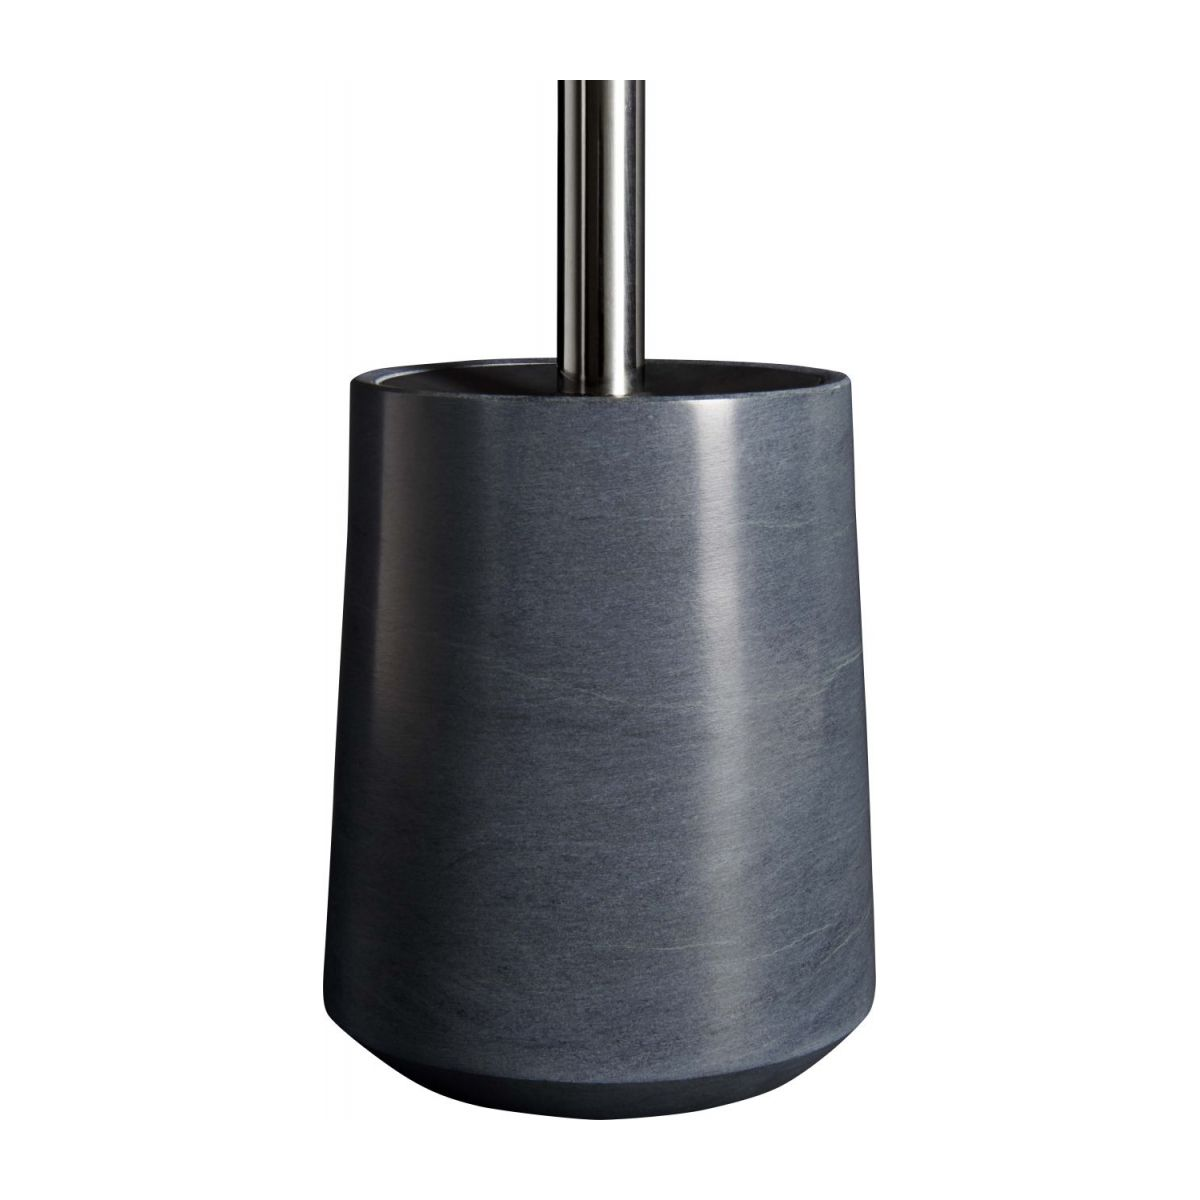 Grey soapstone toilet brush n°4